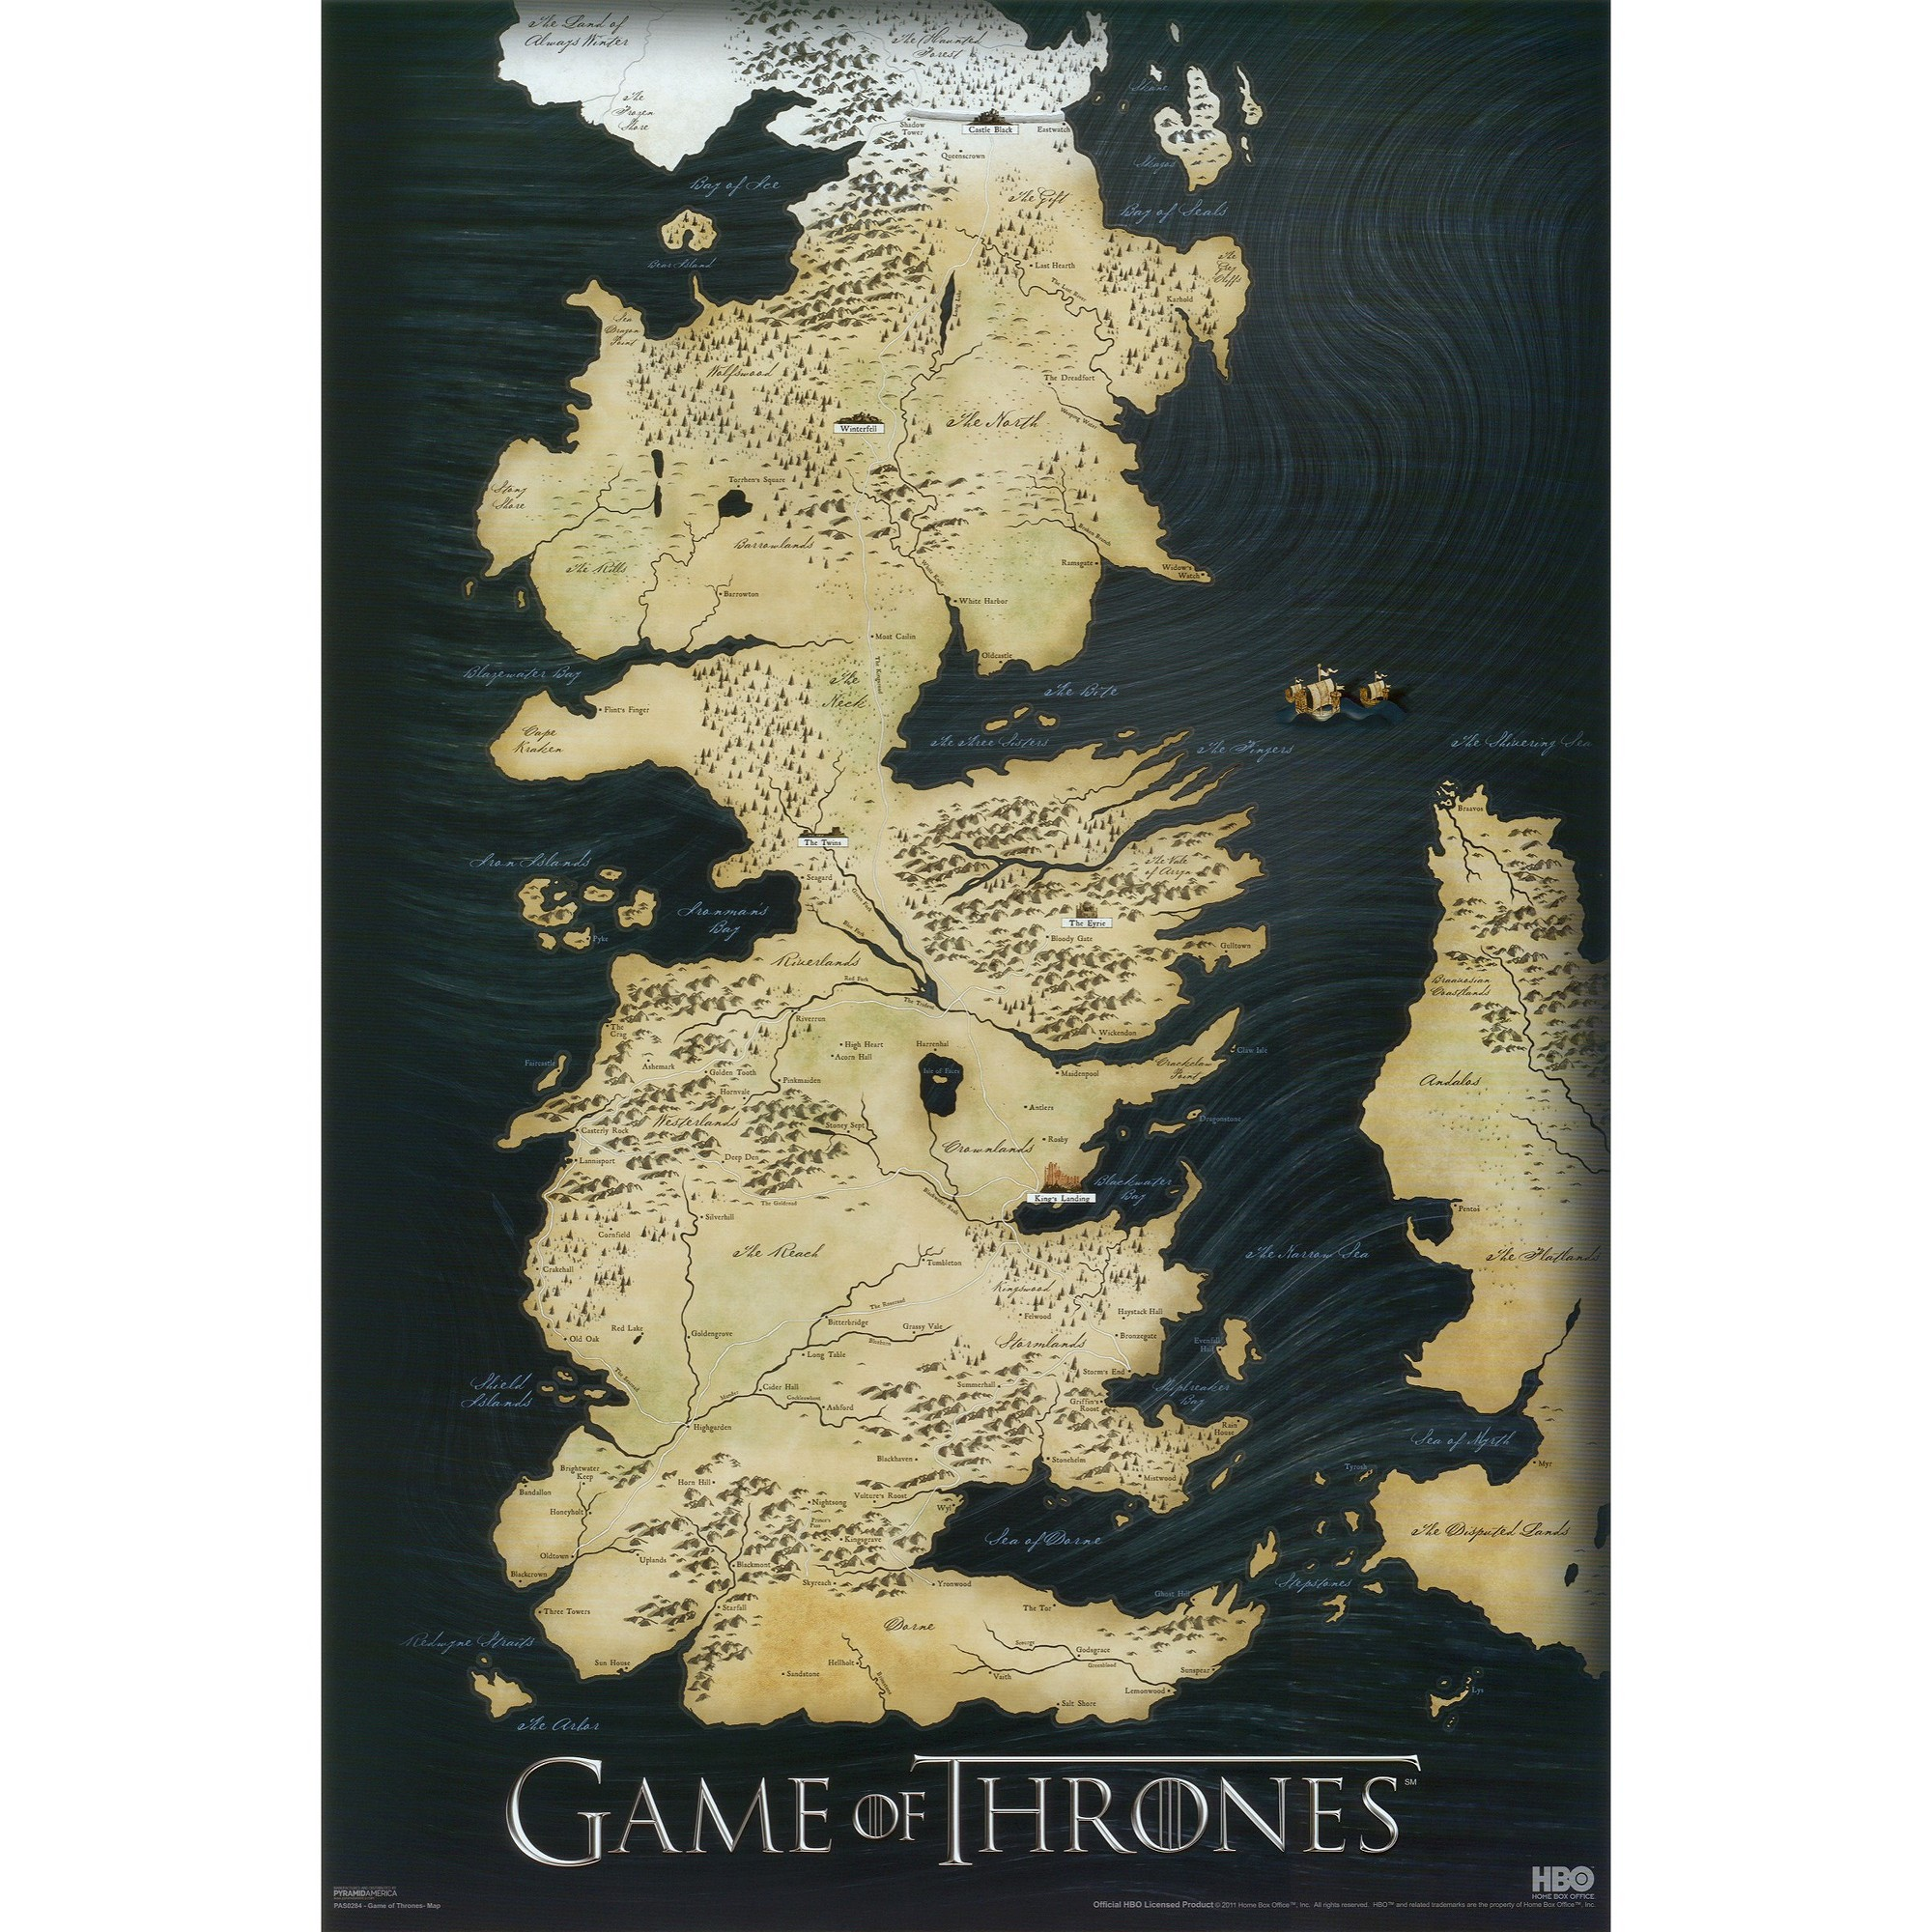 Art.com - Game of Thrones - Map Poster